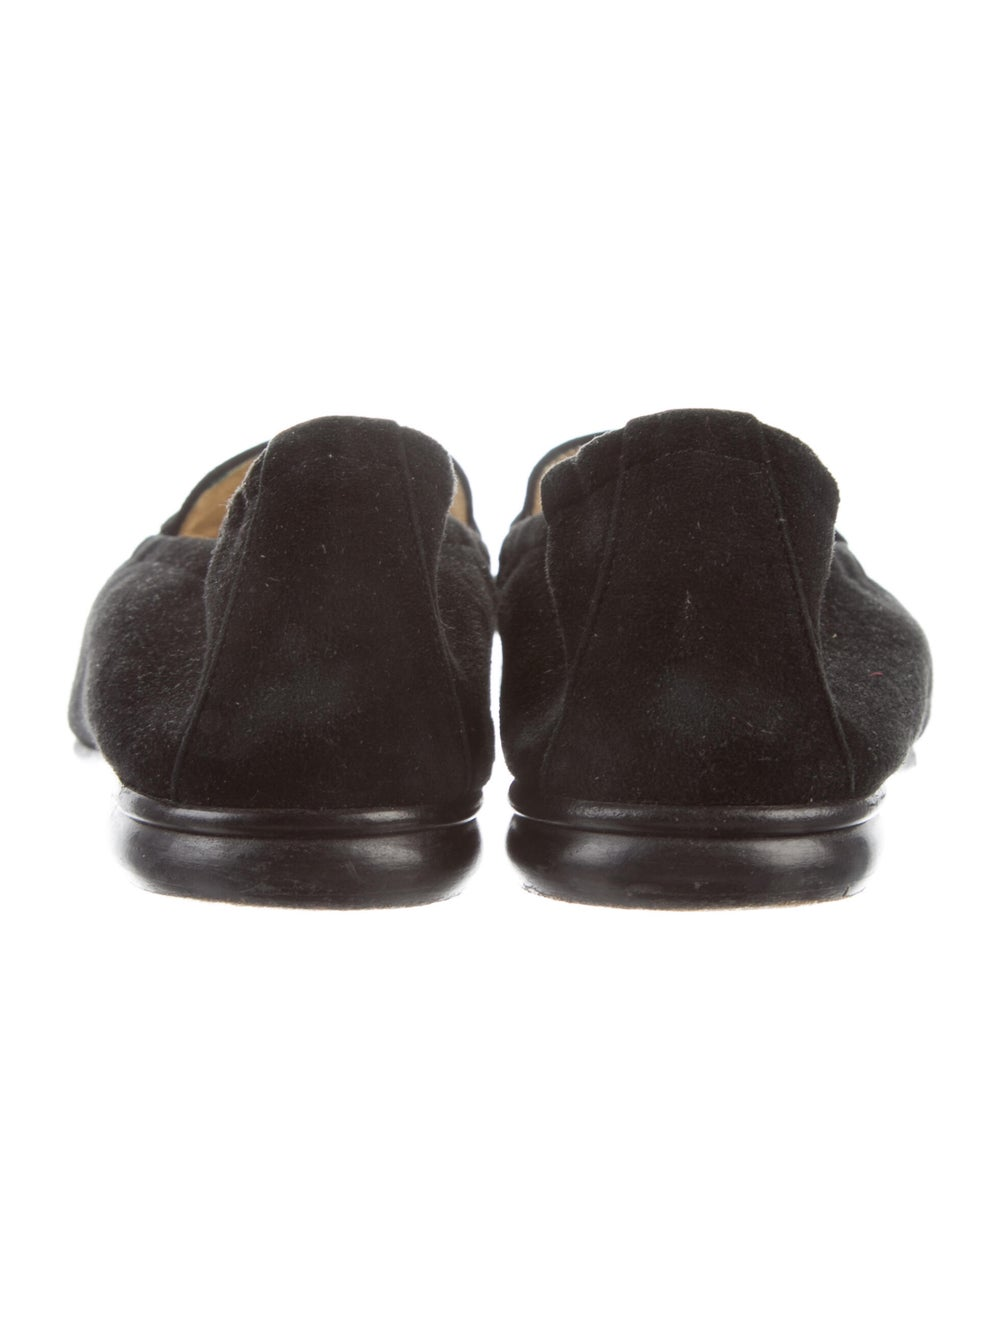 Gucci Horsebit Accent Suede Loafers Black - image 4